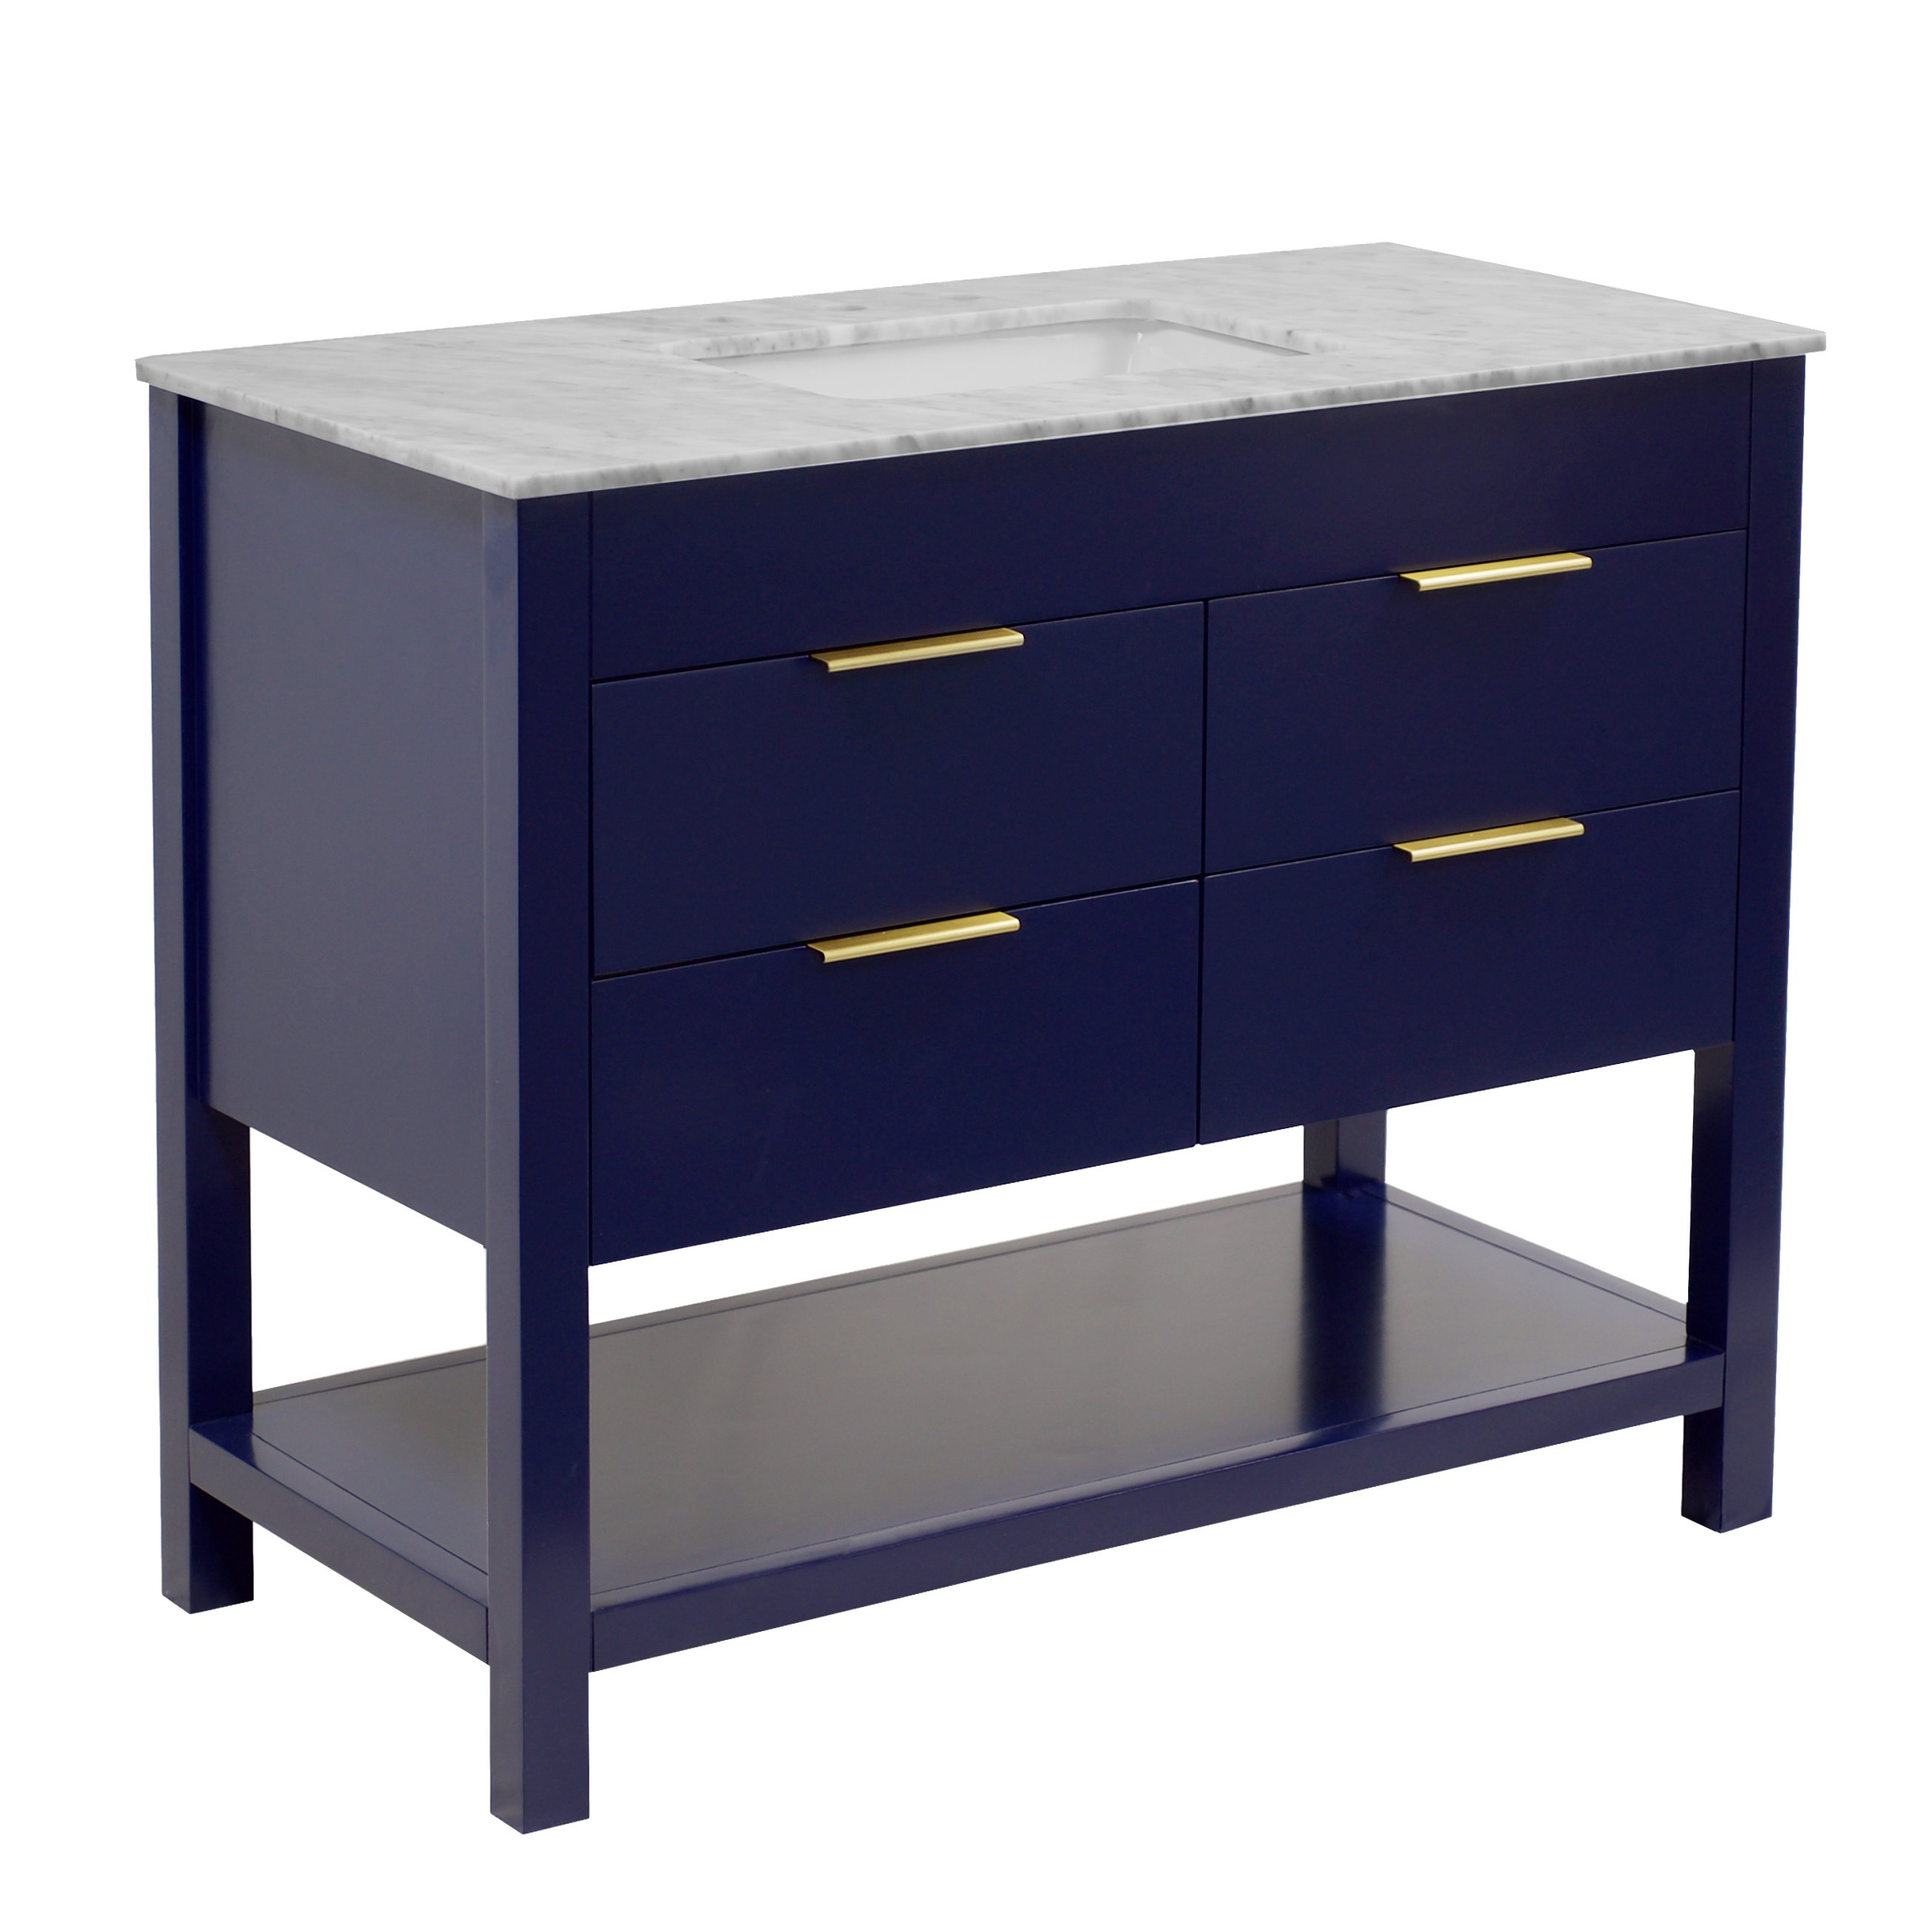 "Harbor 42"" Bathroom Vanity with Royal Blue Cabinet ..."